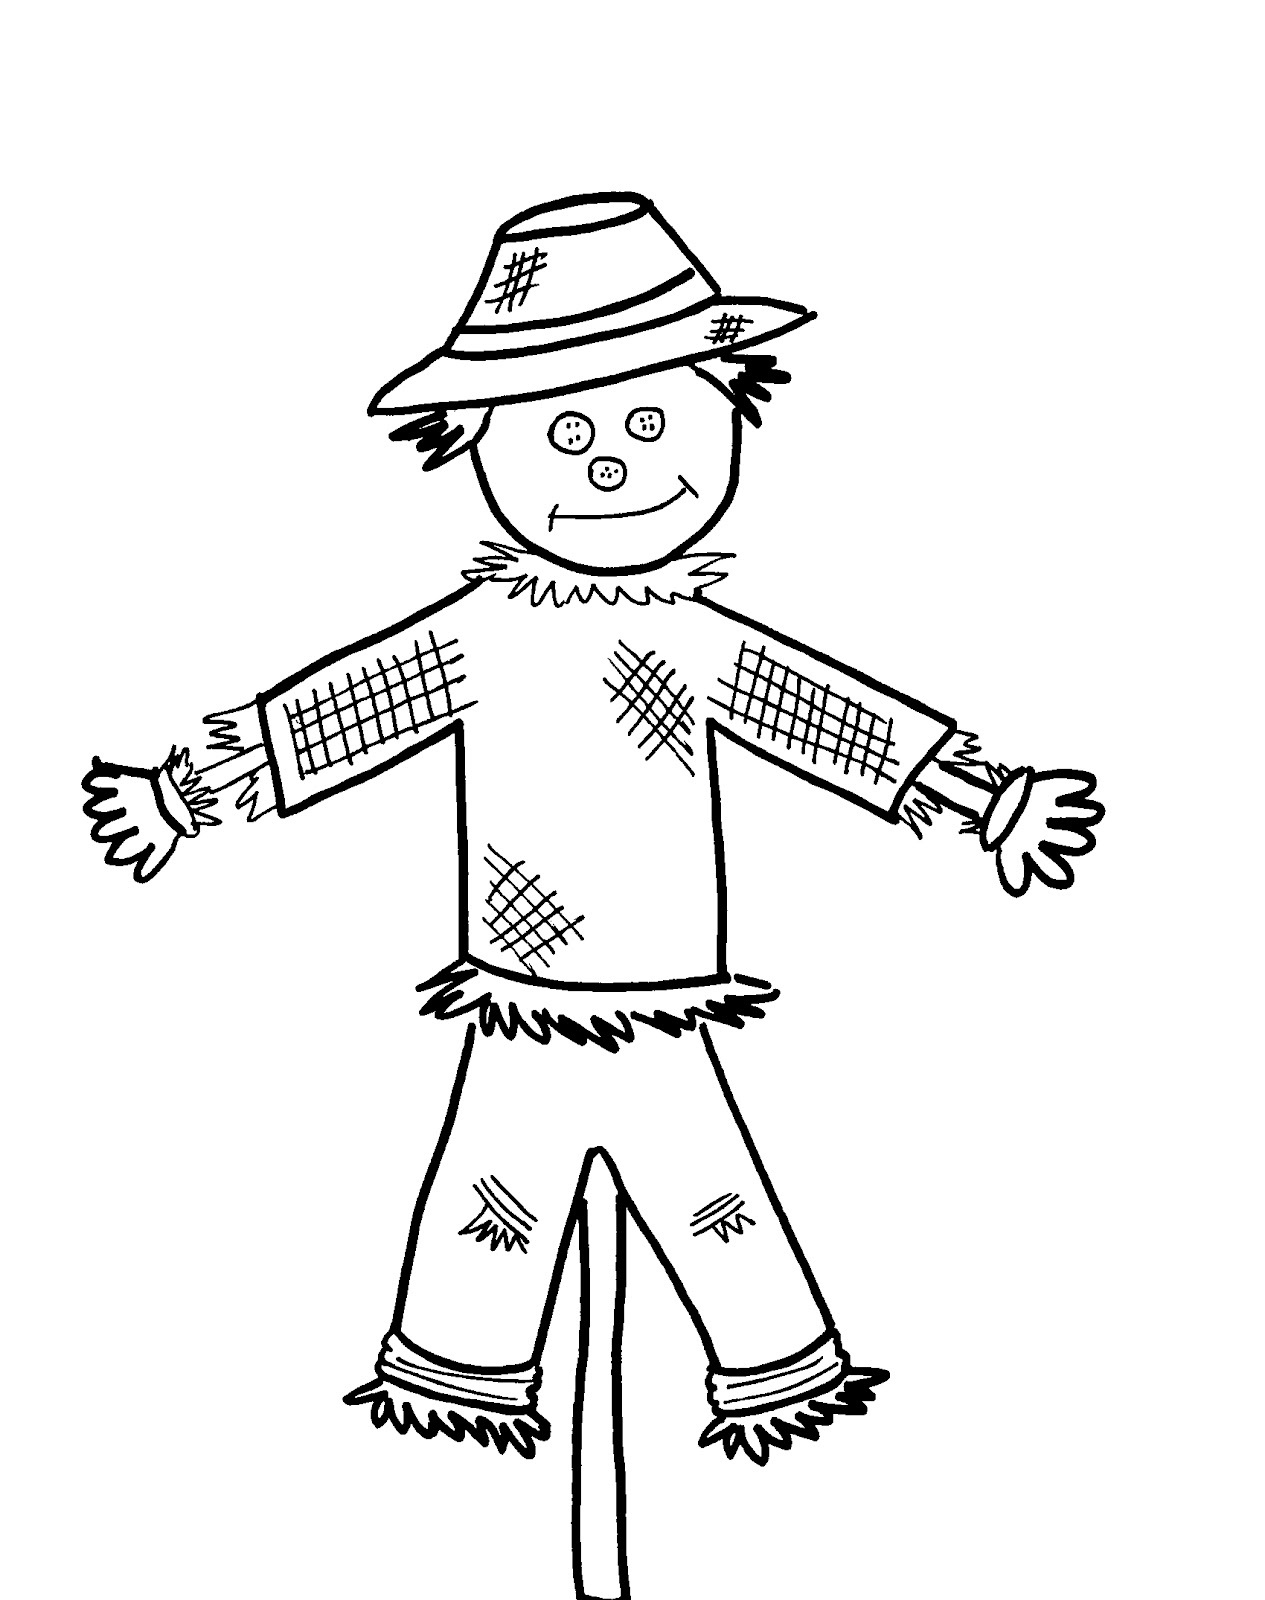 Scarecrow clipart black and white, Scarecrow black and ...